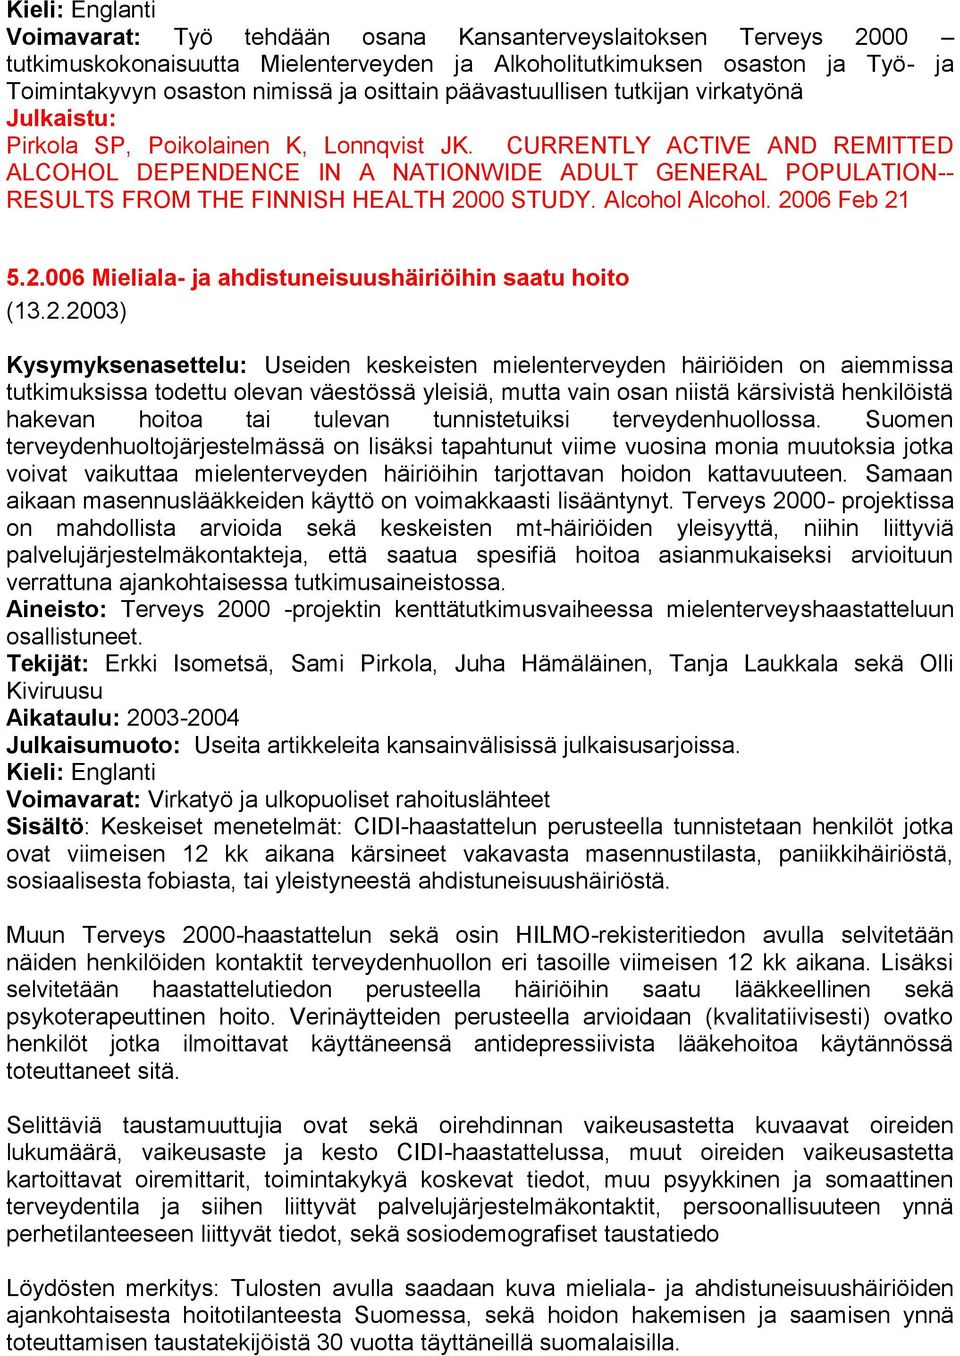 CURRENTLY ACTIVE AND REMITTED ALCOHOL DEPENDENCE IN A NATIONWIDE ADULT GENERAL POPULATION-- RESULTS FROM THE FINNISH HEALTH 2000 STUDY. Alcohol Alcohol. 2006 Feb 21 5.2.006 Mieliala- ja ahdistuneisuushäiriöihin saatu hoito (13.